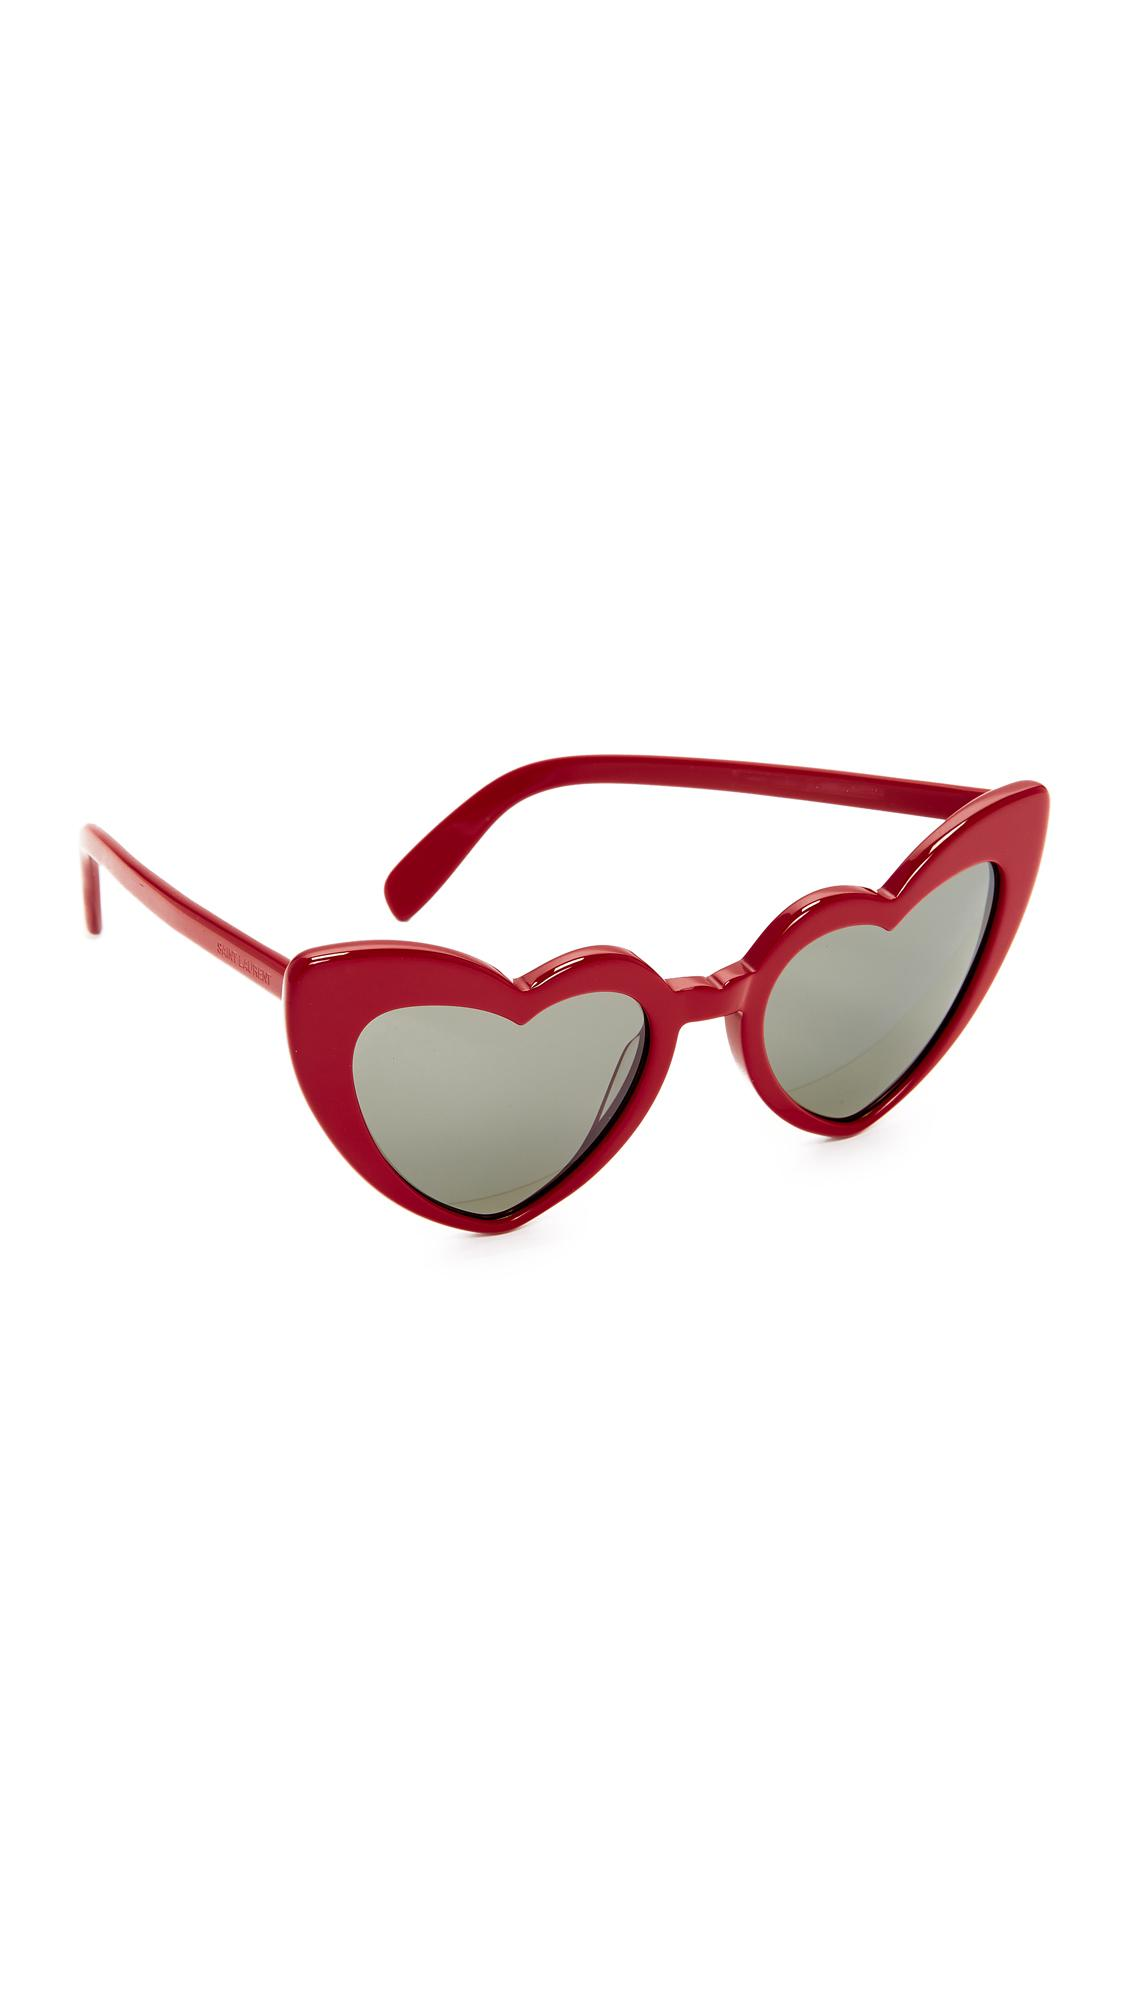 8749ae18f12 Lyst - Saint Laurent Sl 181 Lou Lou Hearts Sunglasses in Red